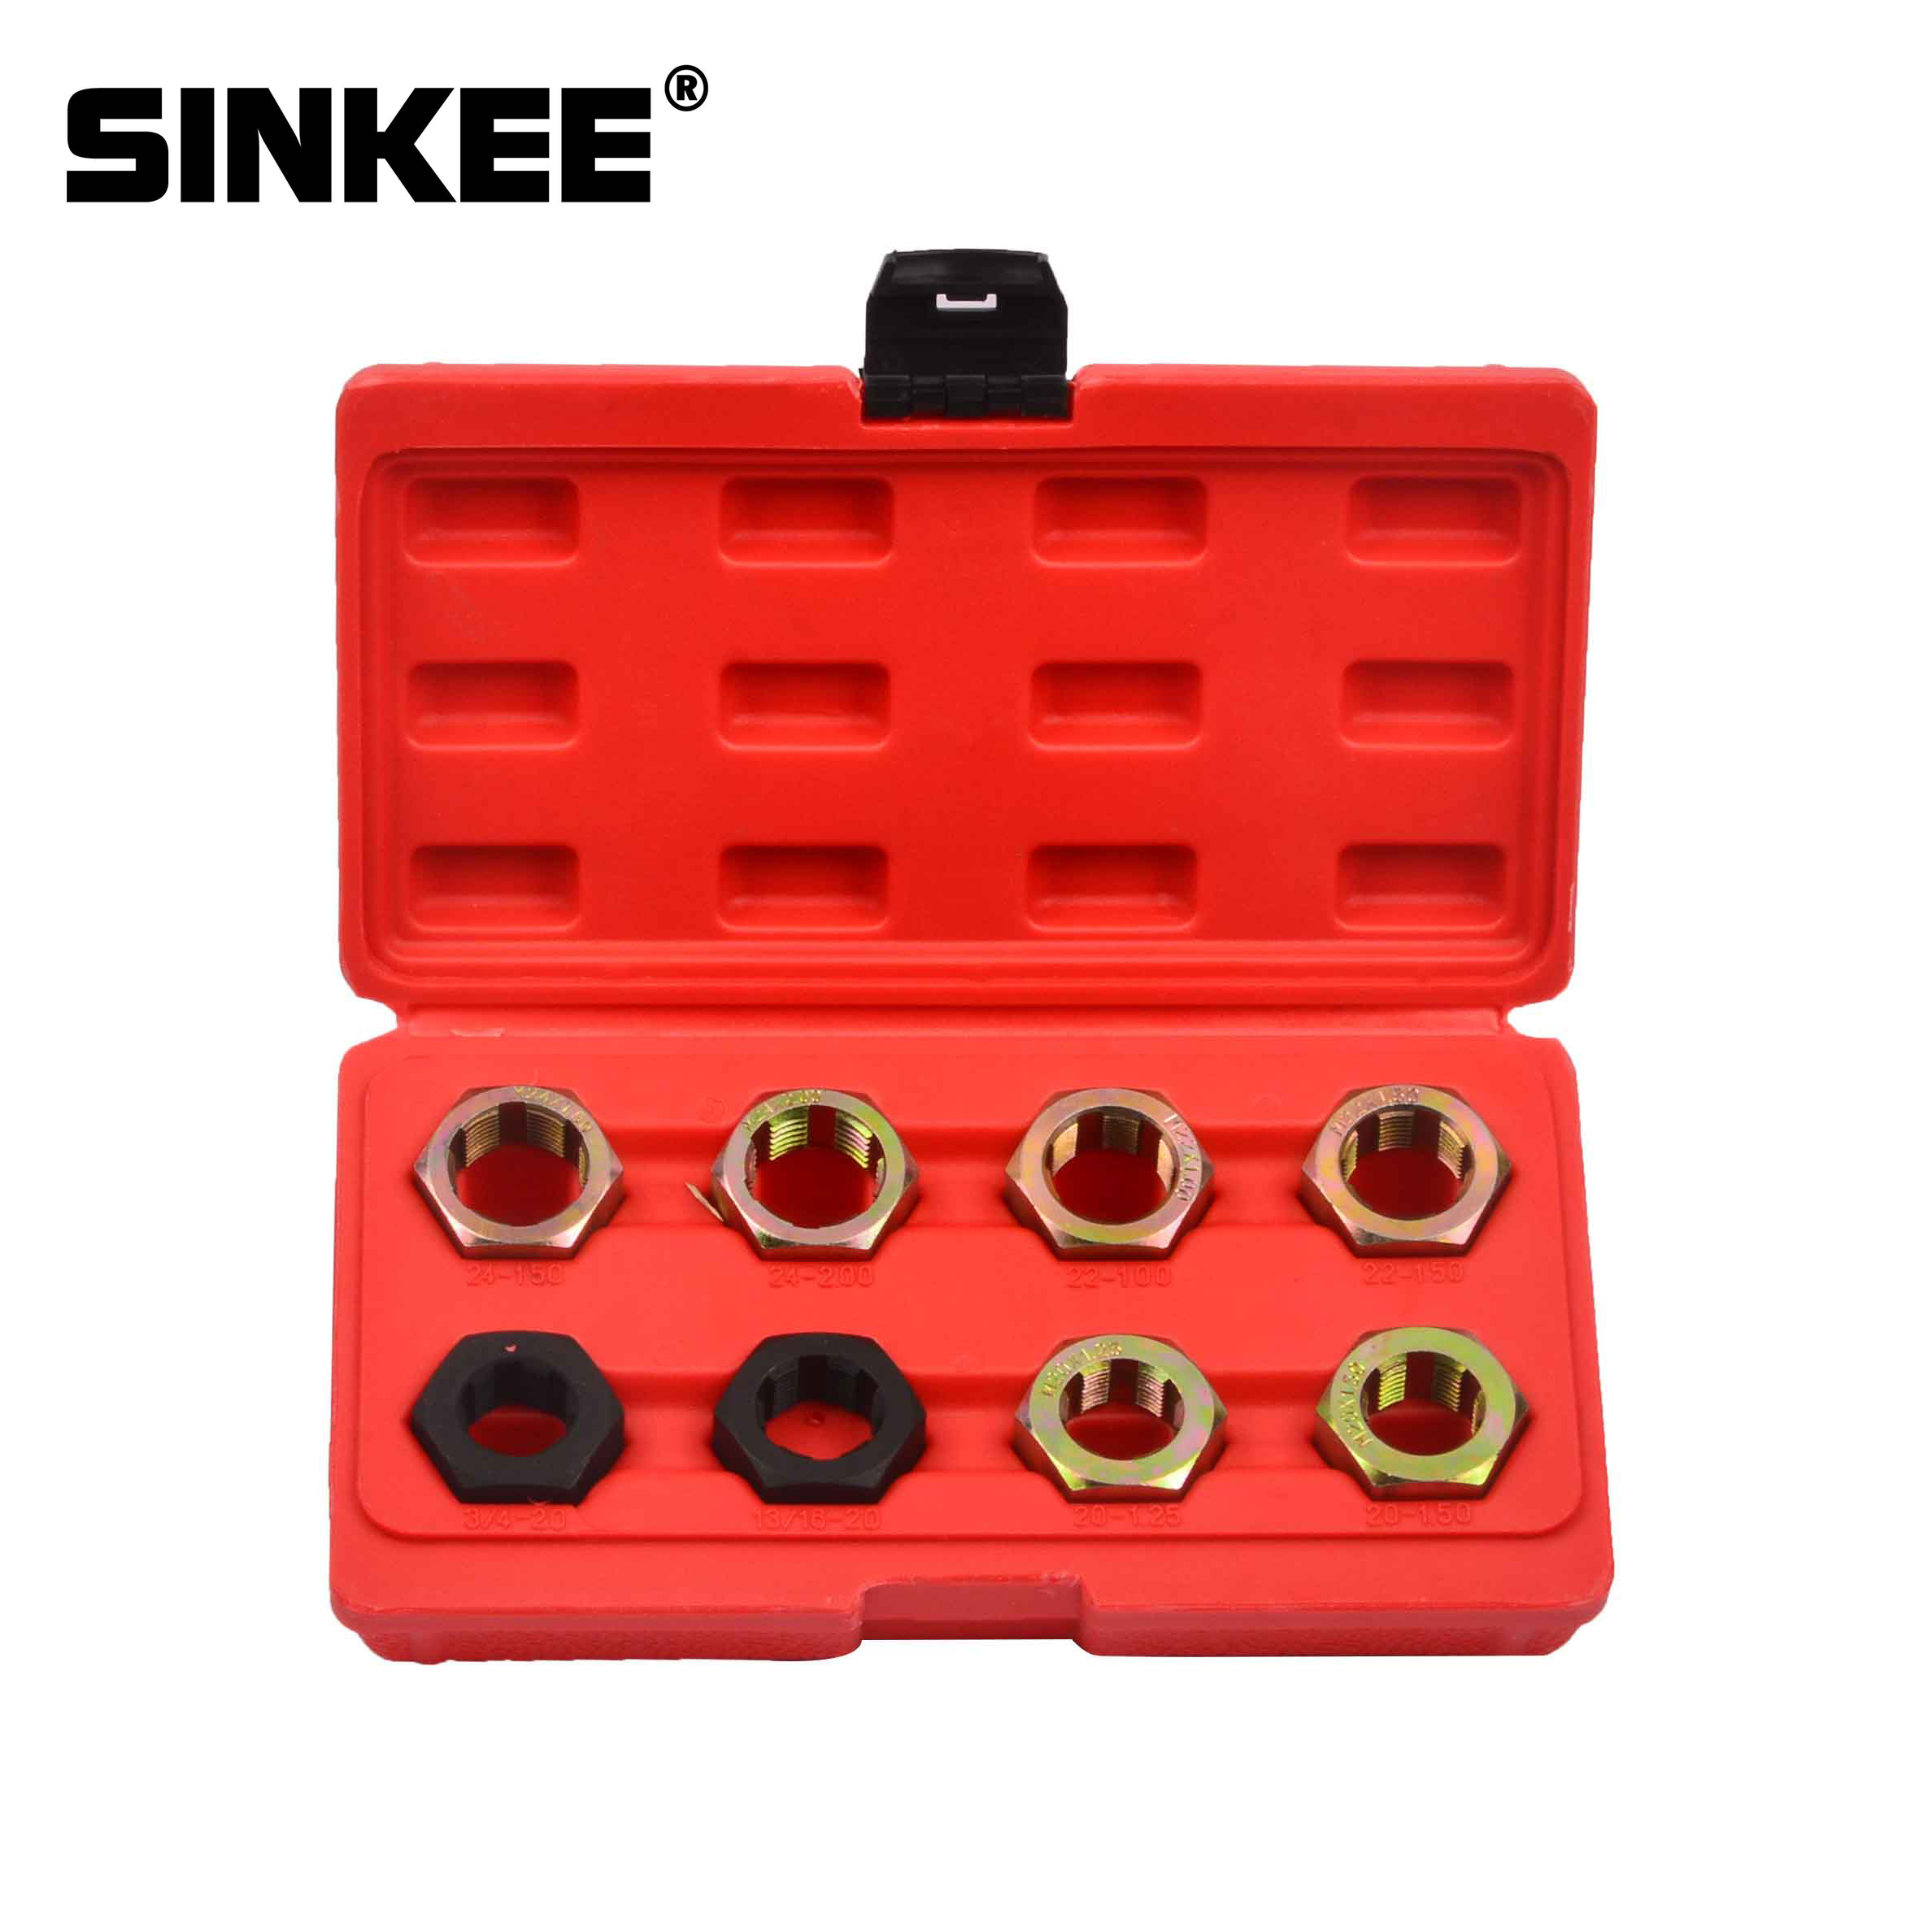 8pc Axle Spindle Fractional Metric Rethreading Tool Set Thread Repair M20 M22 M24 13/16 3/4 X20 UNEF SK1398